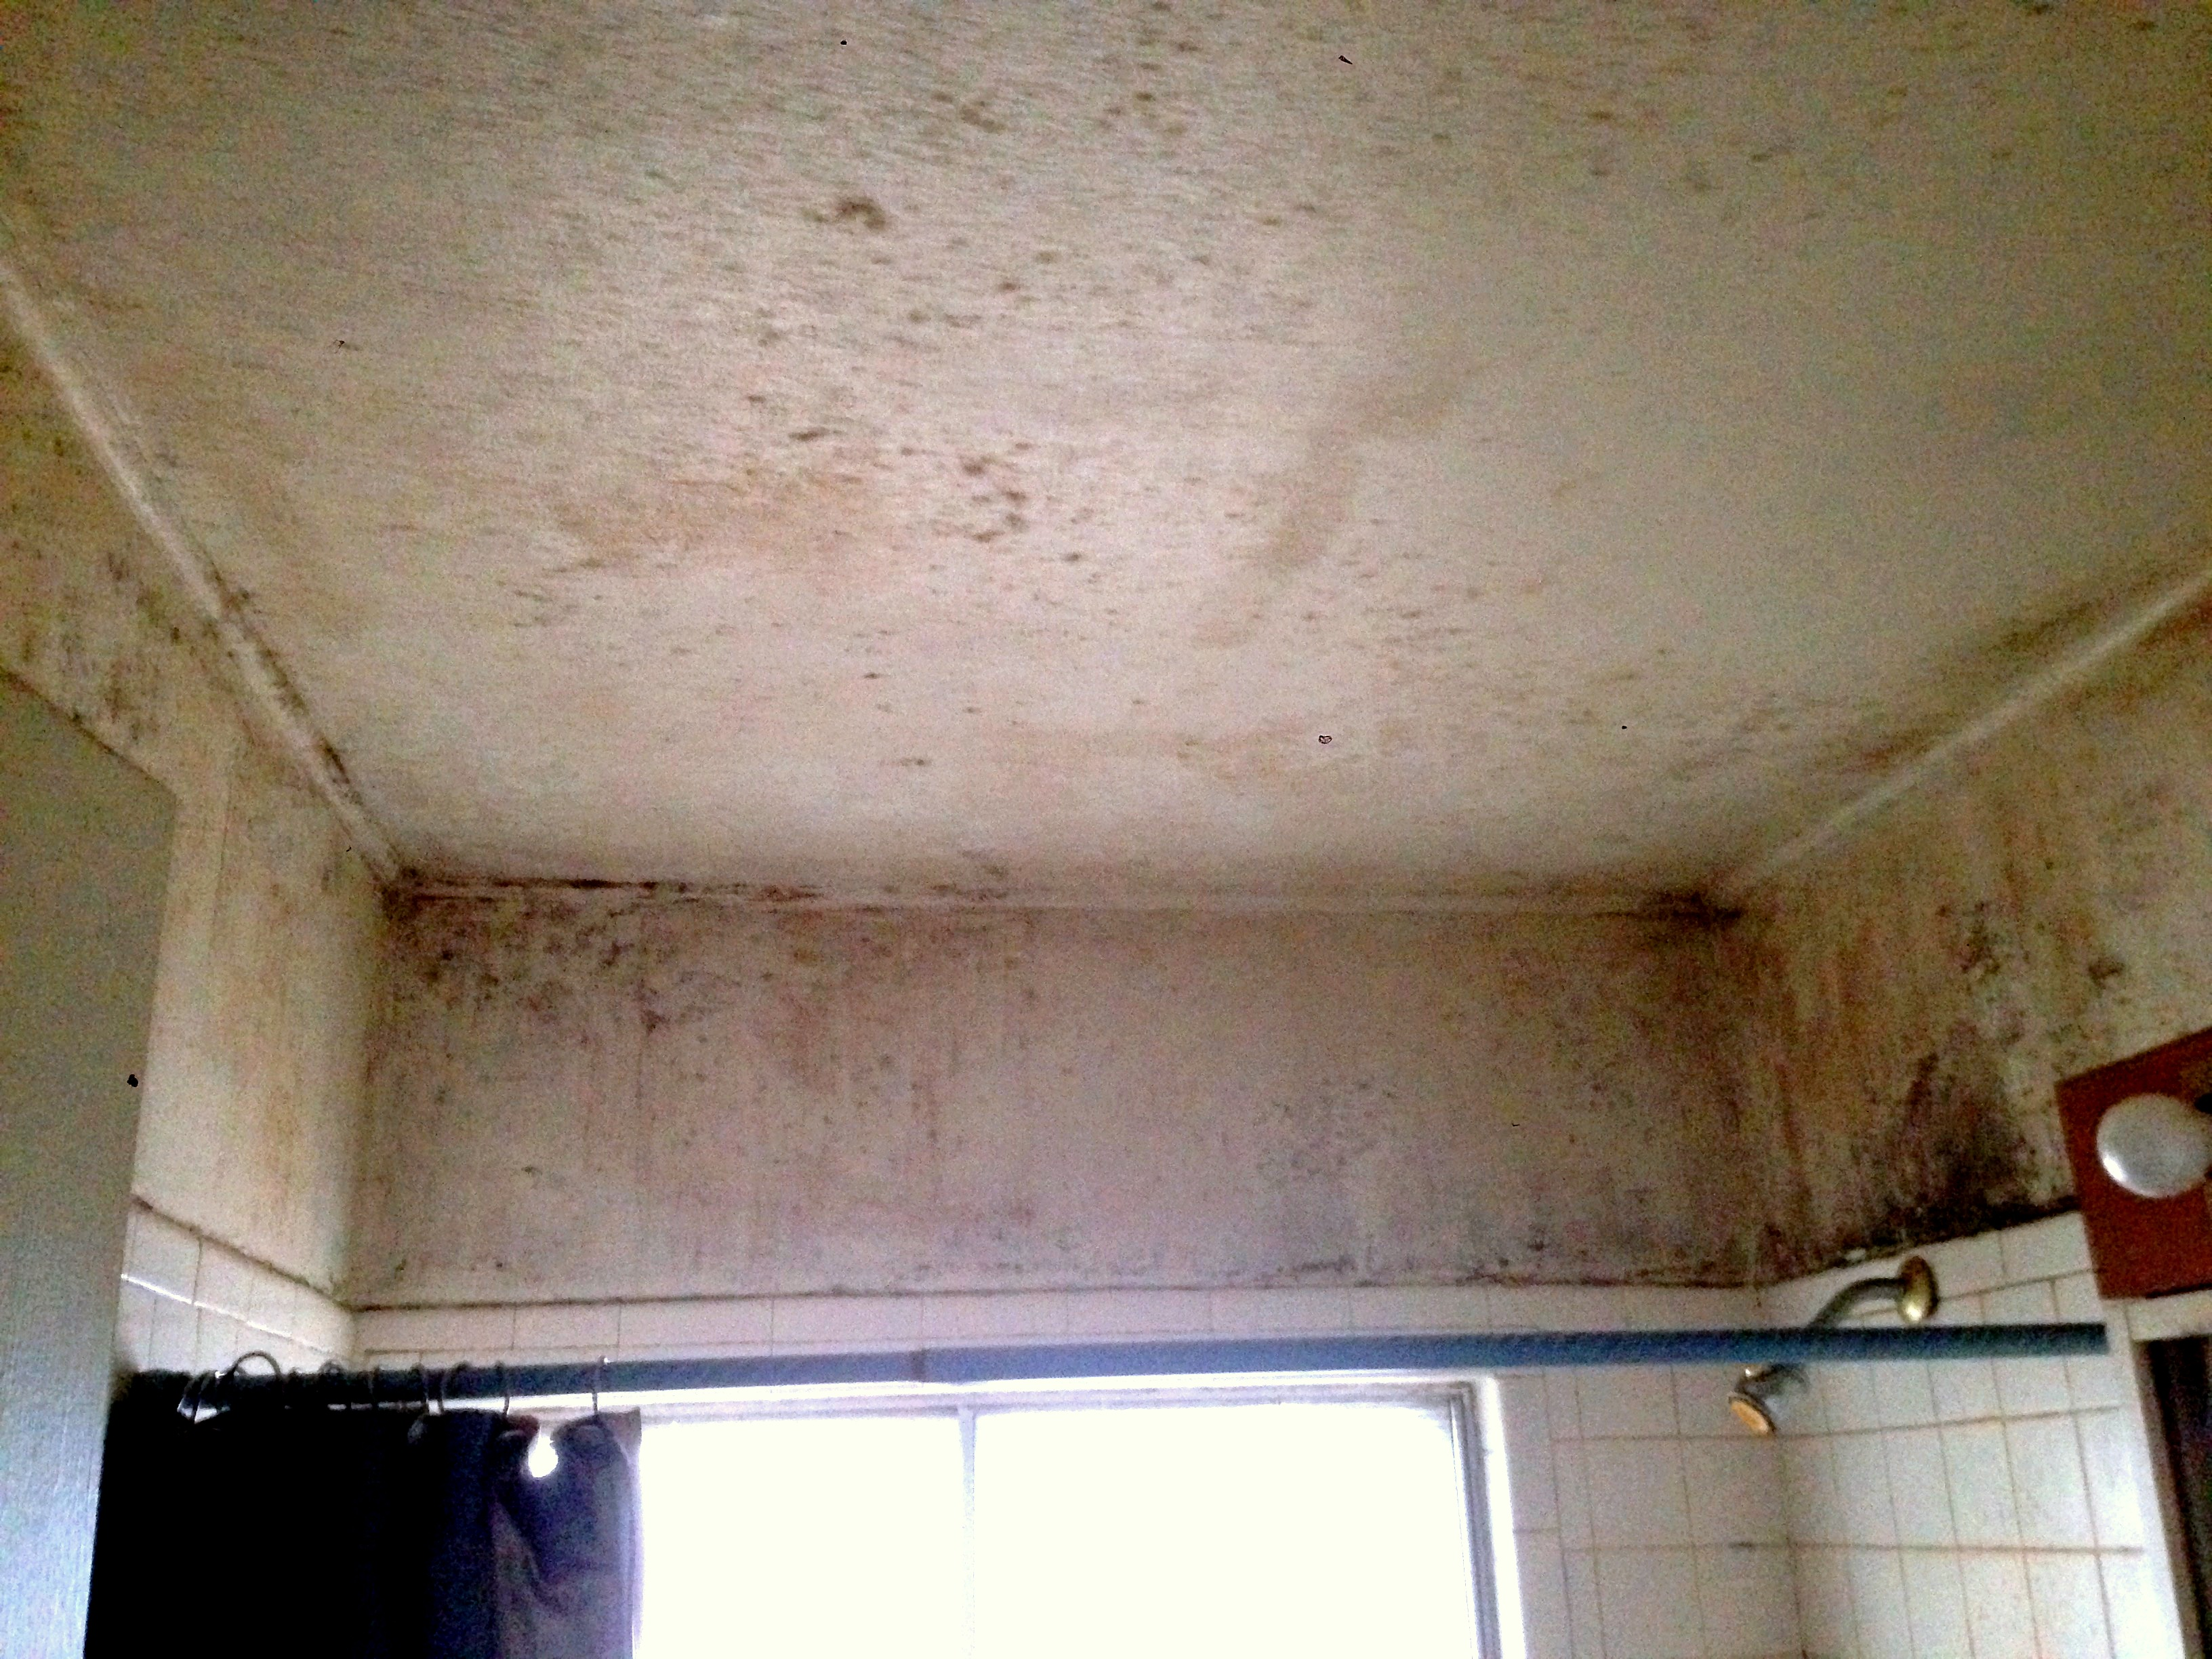 Mold_on_ceiling_of_bathroom.jpg